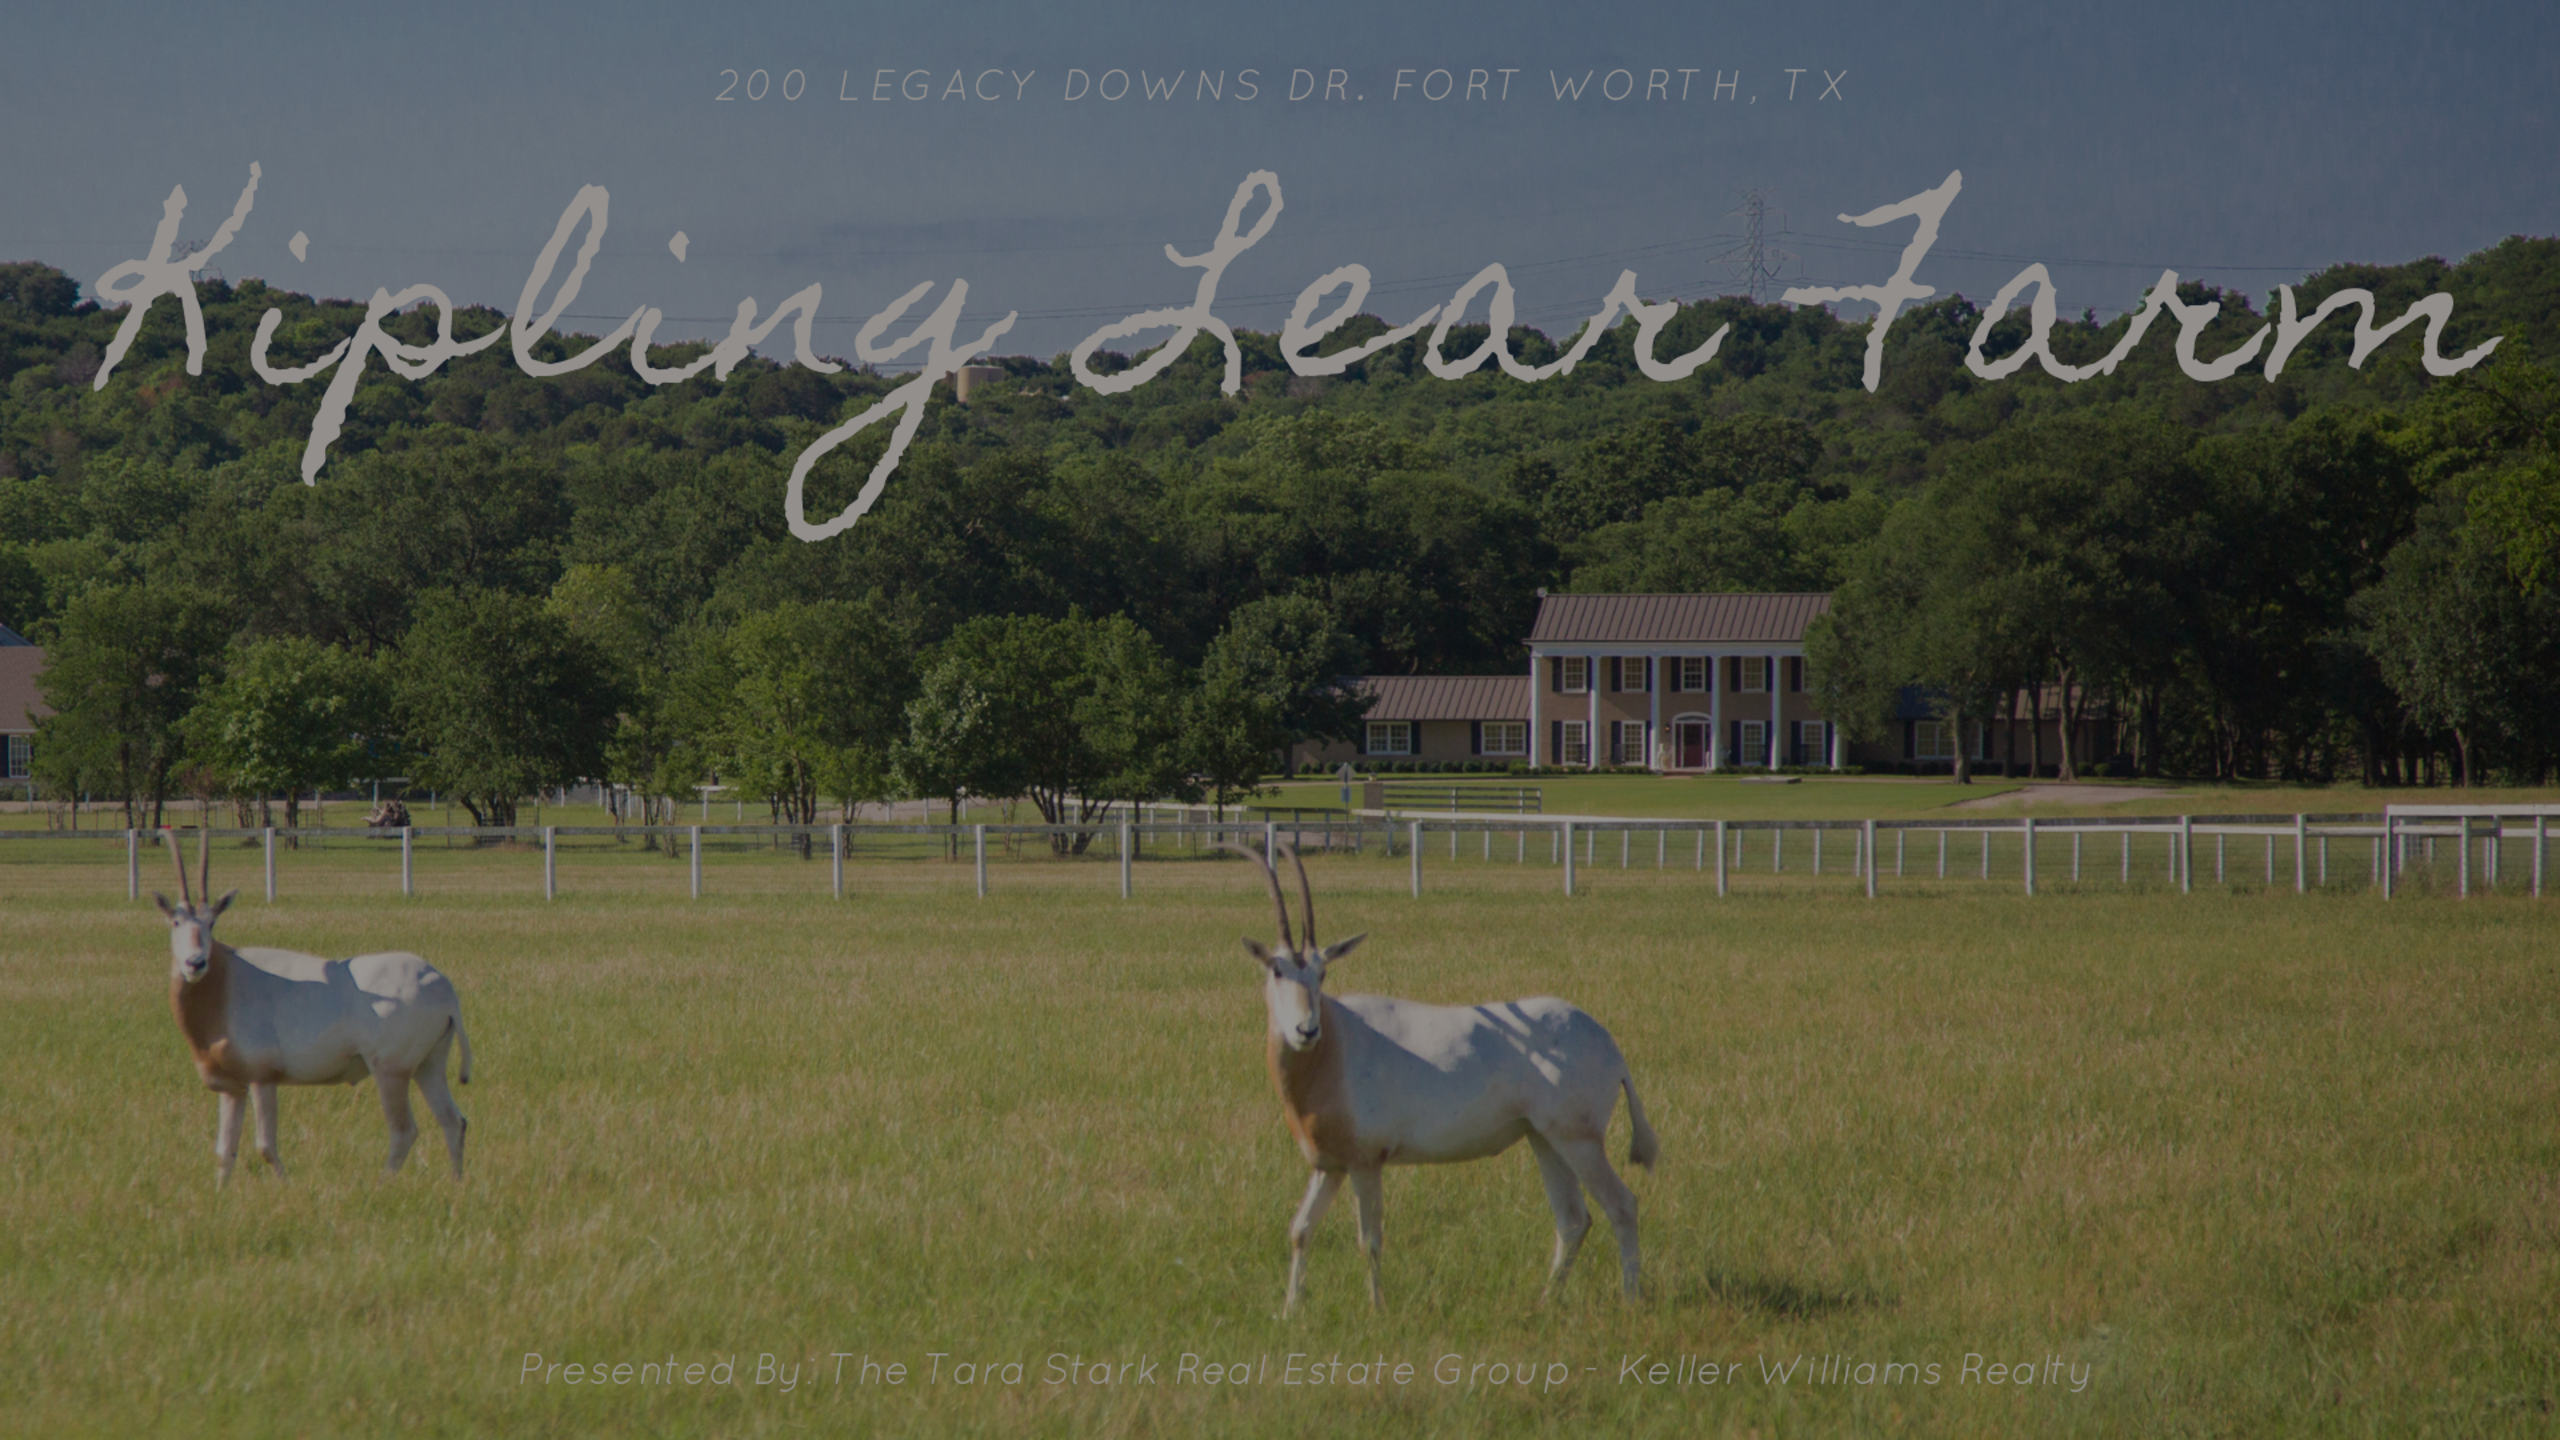 The Luxurious Equestrian Estate of Kipling Lear Farm – Fort Worth, TX